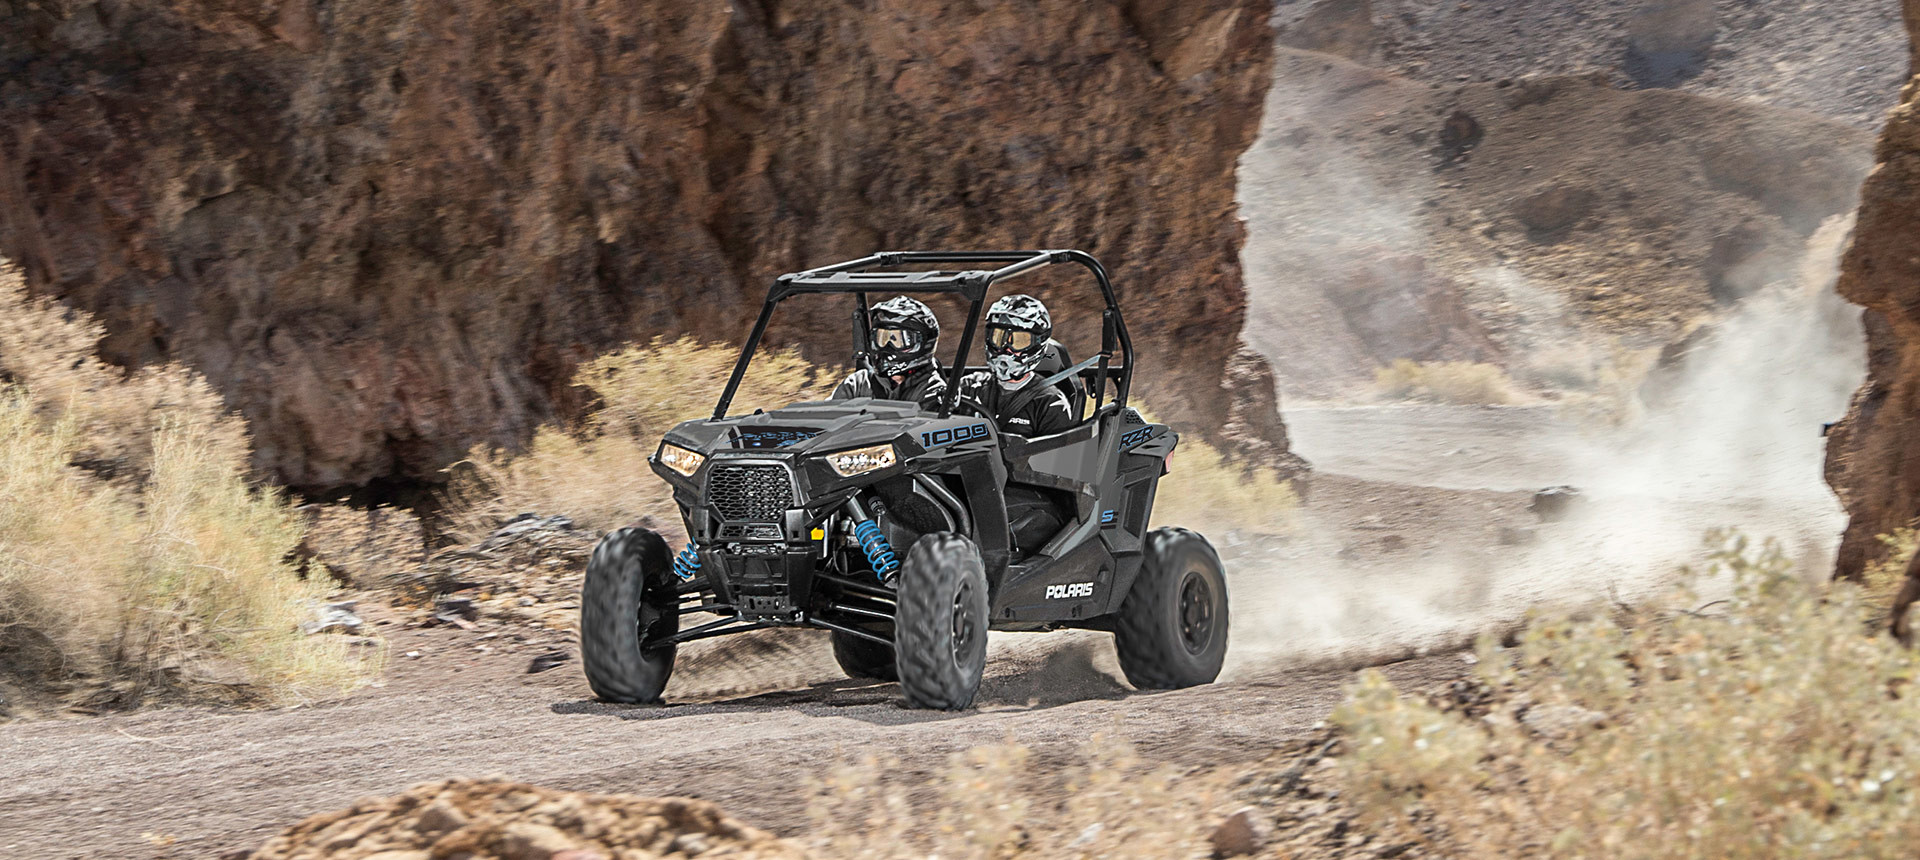 2020 RZR<sup>®</sup> Trail S 1000 Instagram image 2